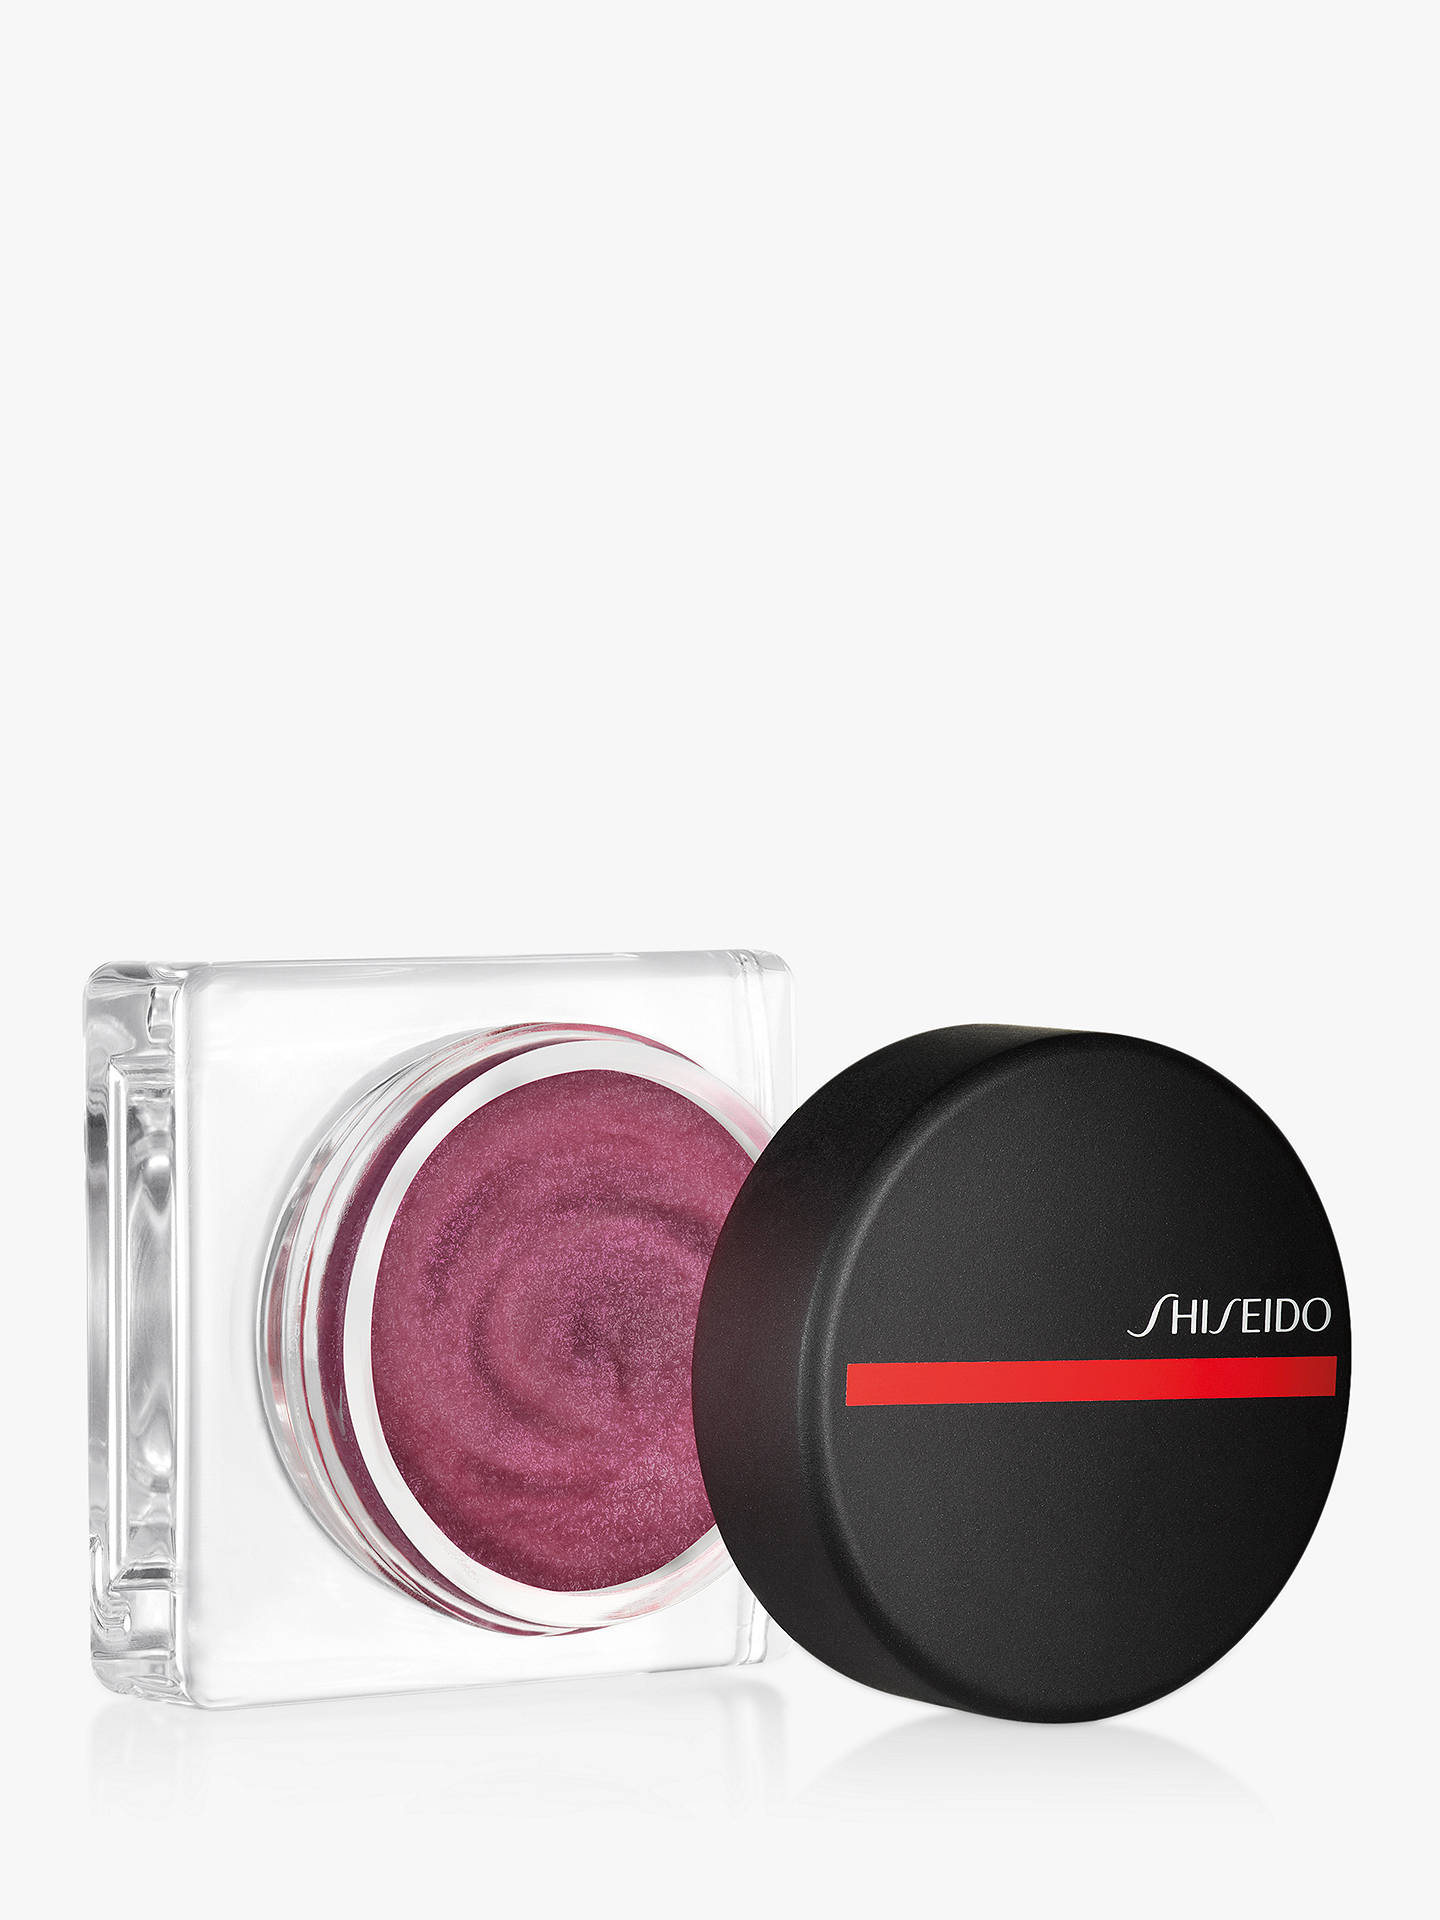 Buy Shiseido Minimalist Whipped Powder Blush, Setsuko 07 Online at johnlewis.com